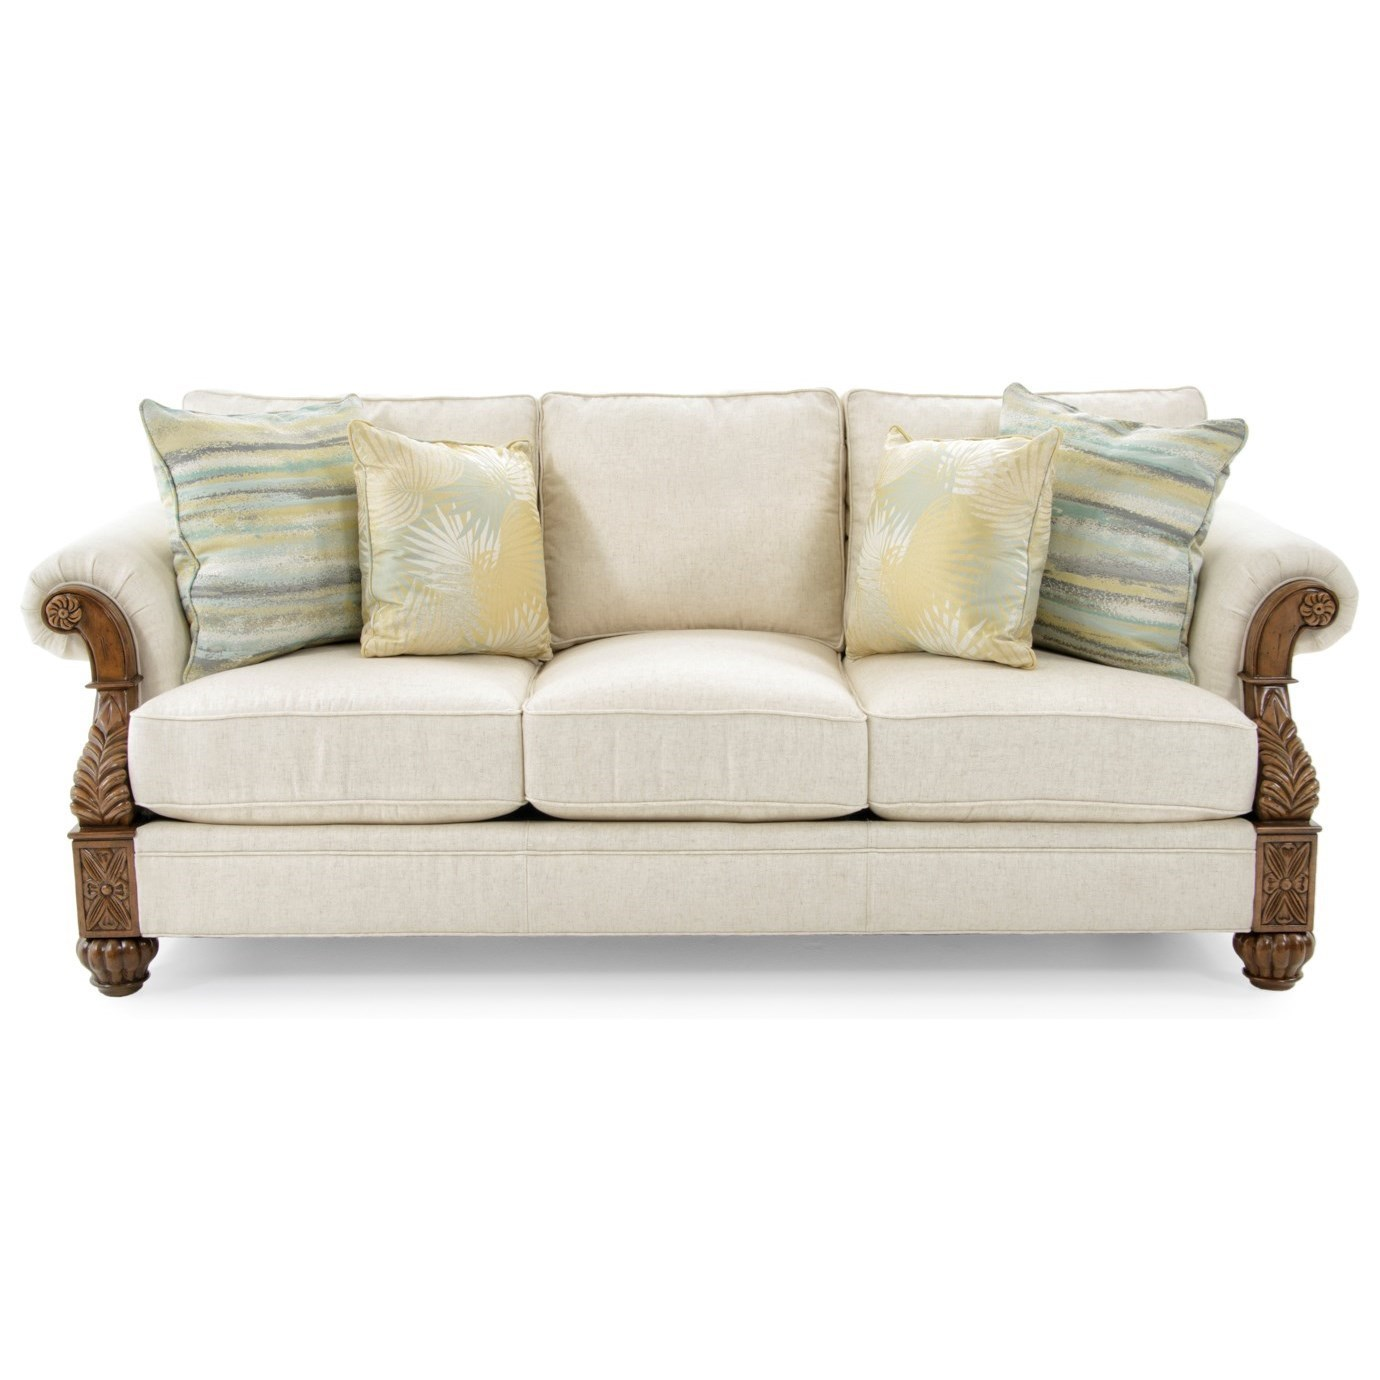 Tommy Bahama Home Tommy Bahama UpholsteryBenoa Harbour Sofa Custom ...